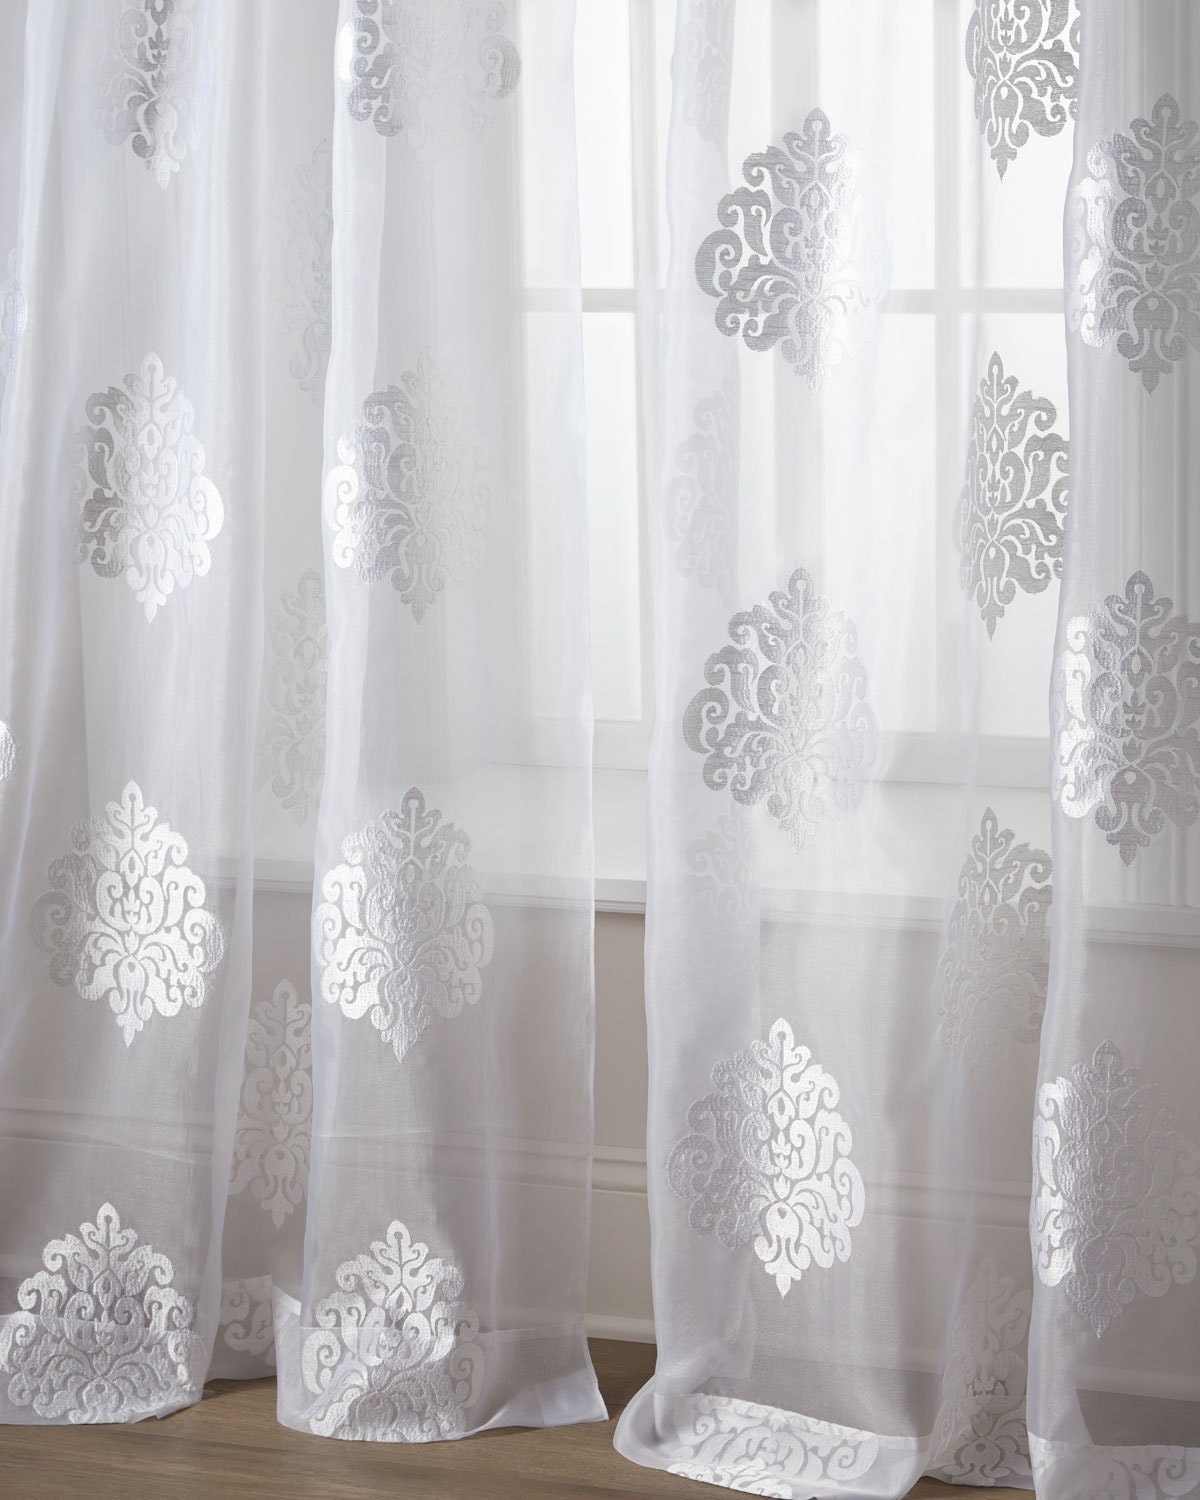 dylon embroidered polyester voile sheer curtains by bharatusaltd. Black Bedroom Furniture Sets. Home Design Ideas